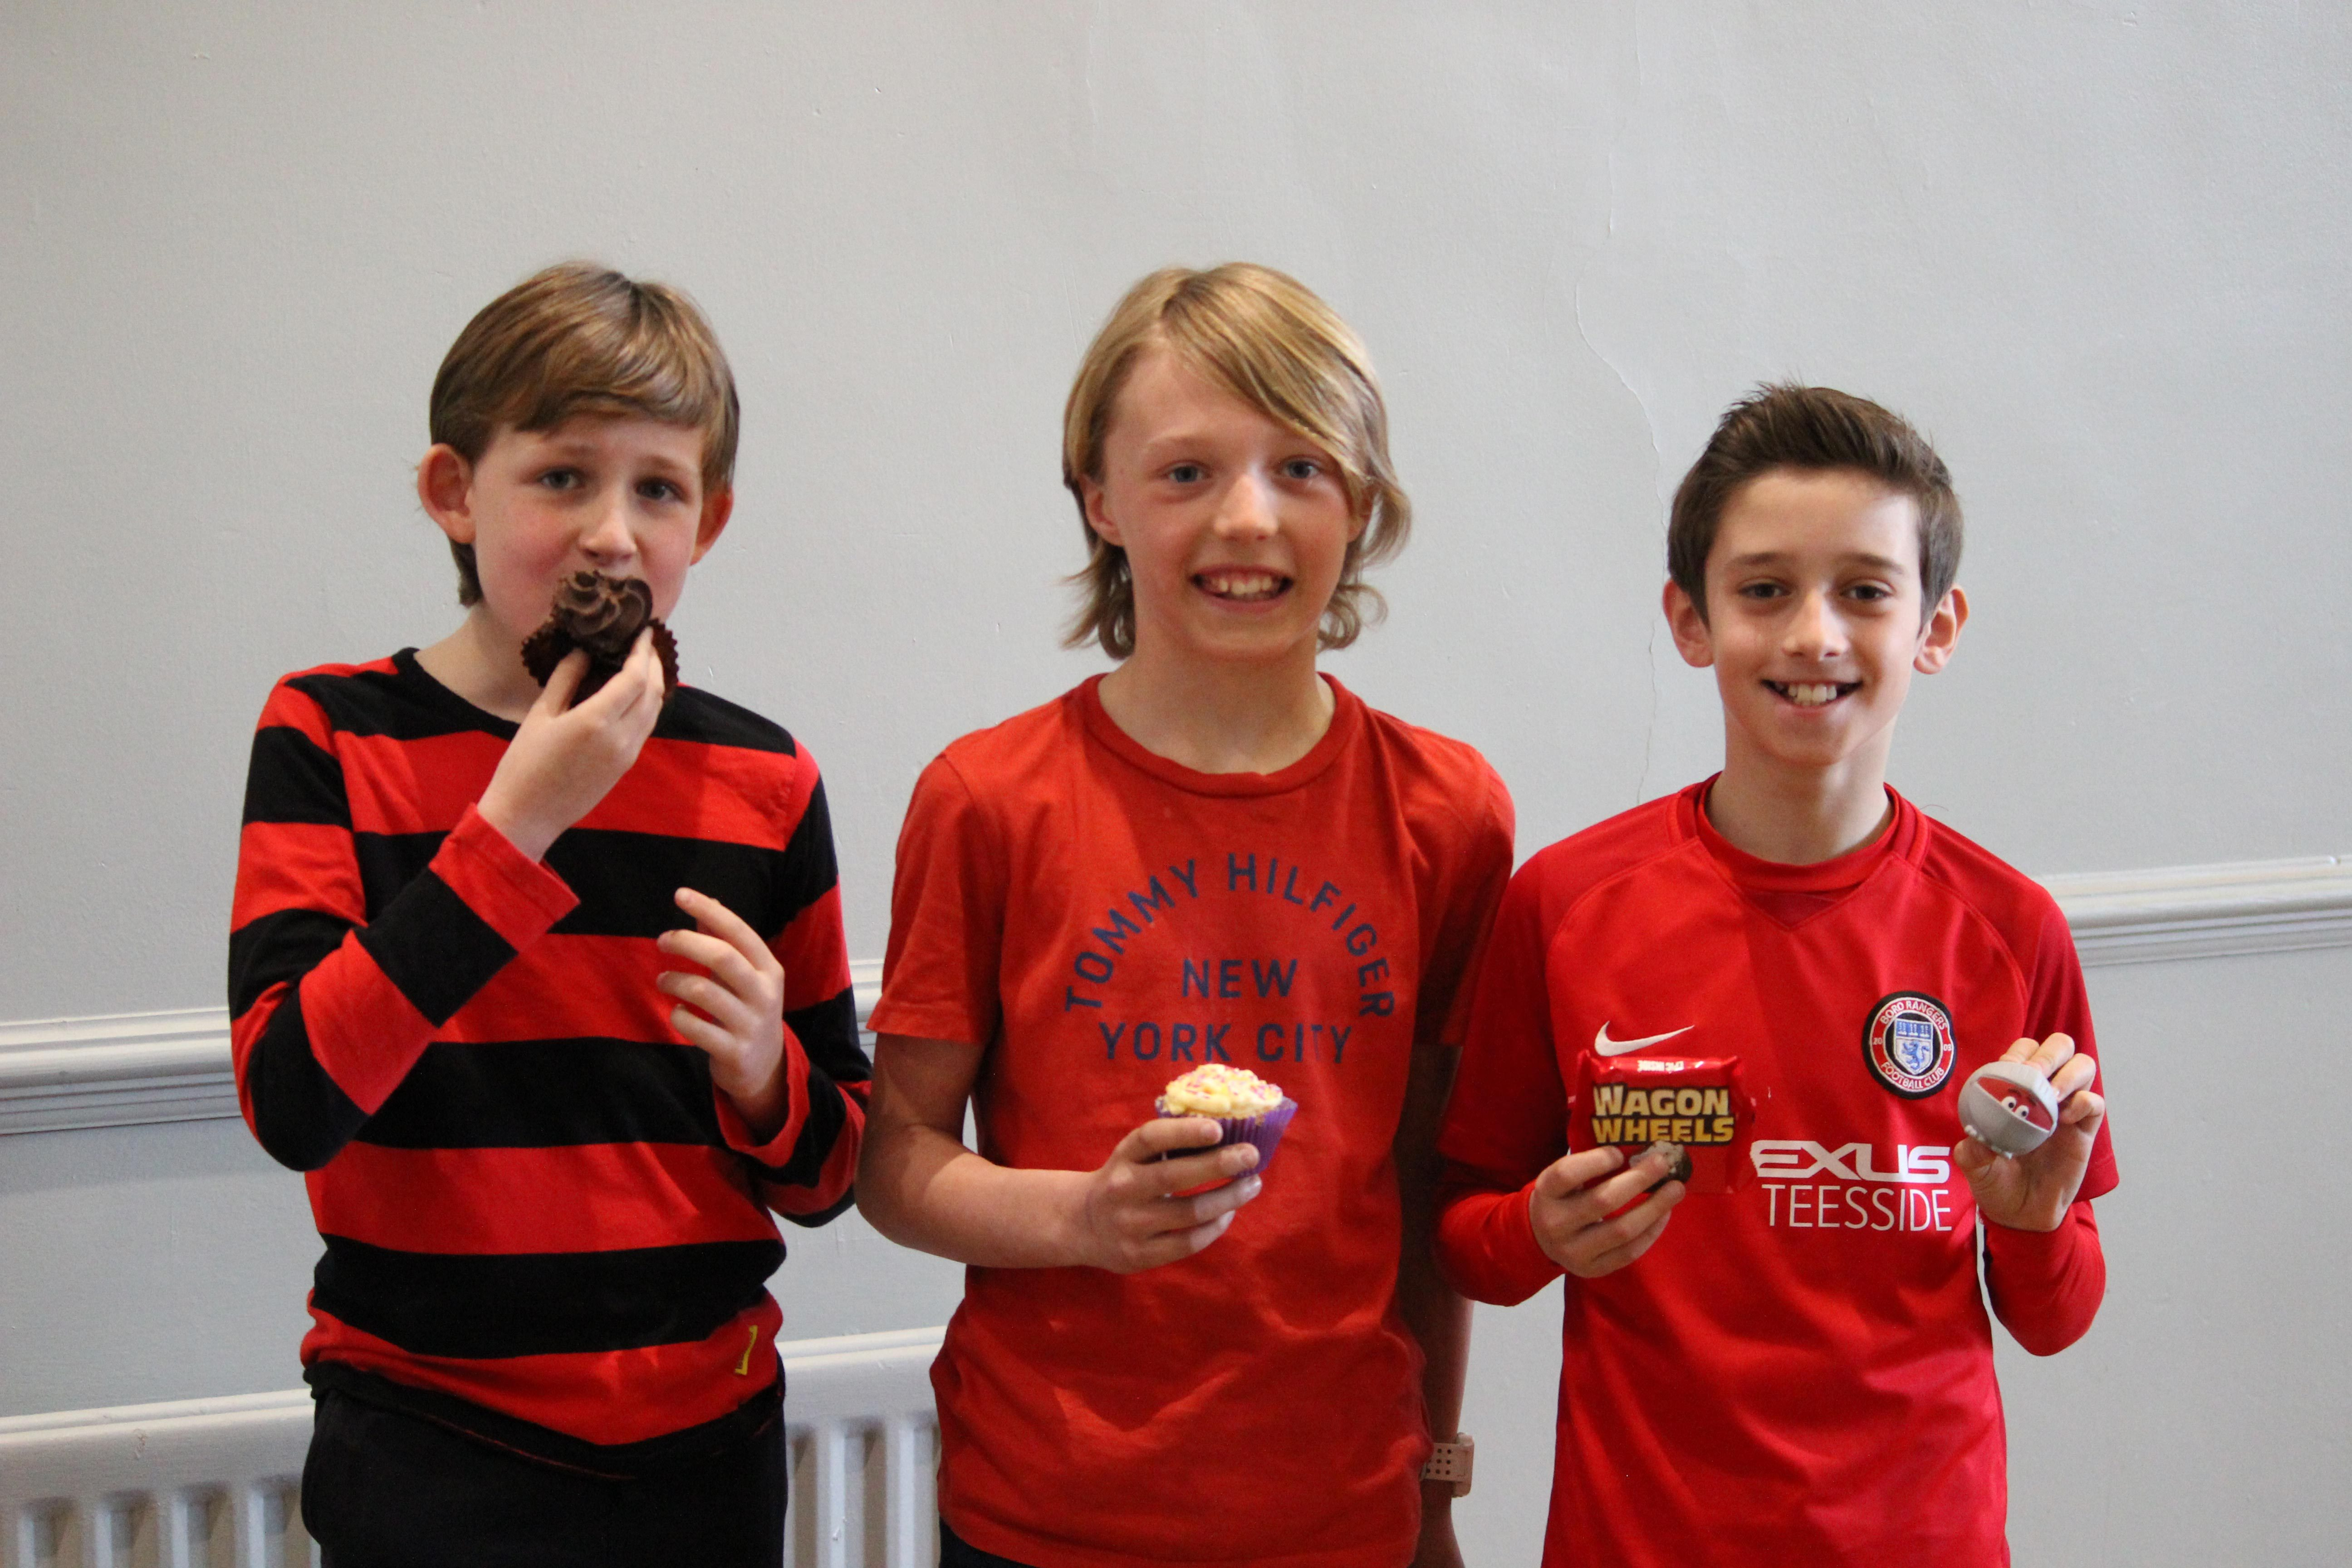 Three Red House School pupils stood holding cakes that they have bought to raise funds for Red Nose Day